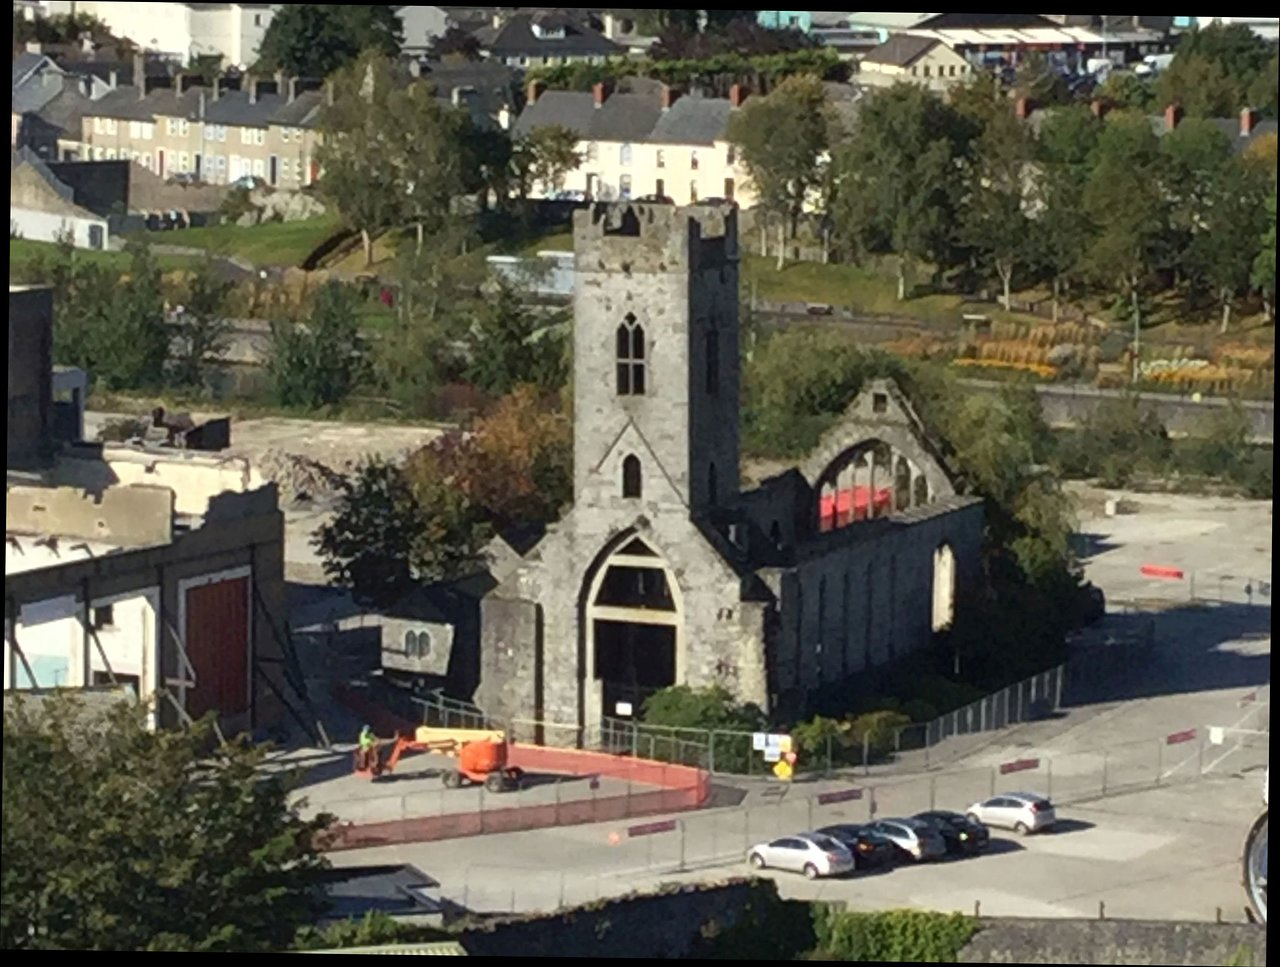 St Francis Abbey Kilkenny Updated 2021 All You Need To Know Before You Go With Photos